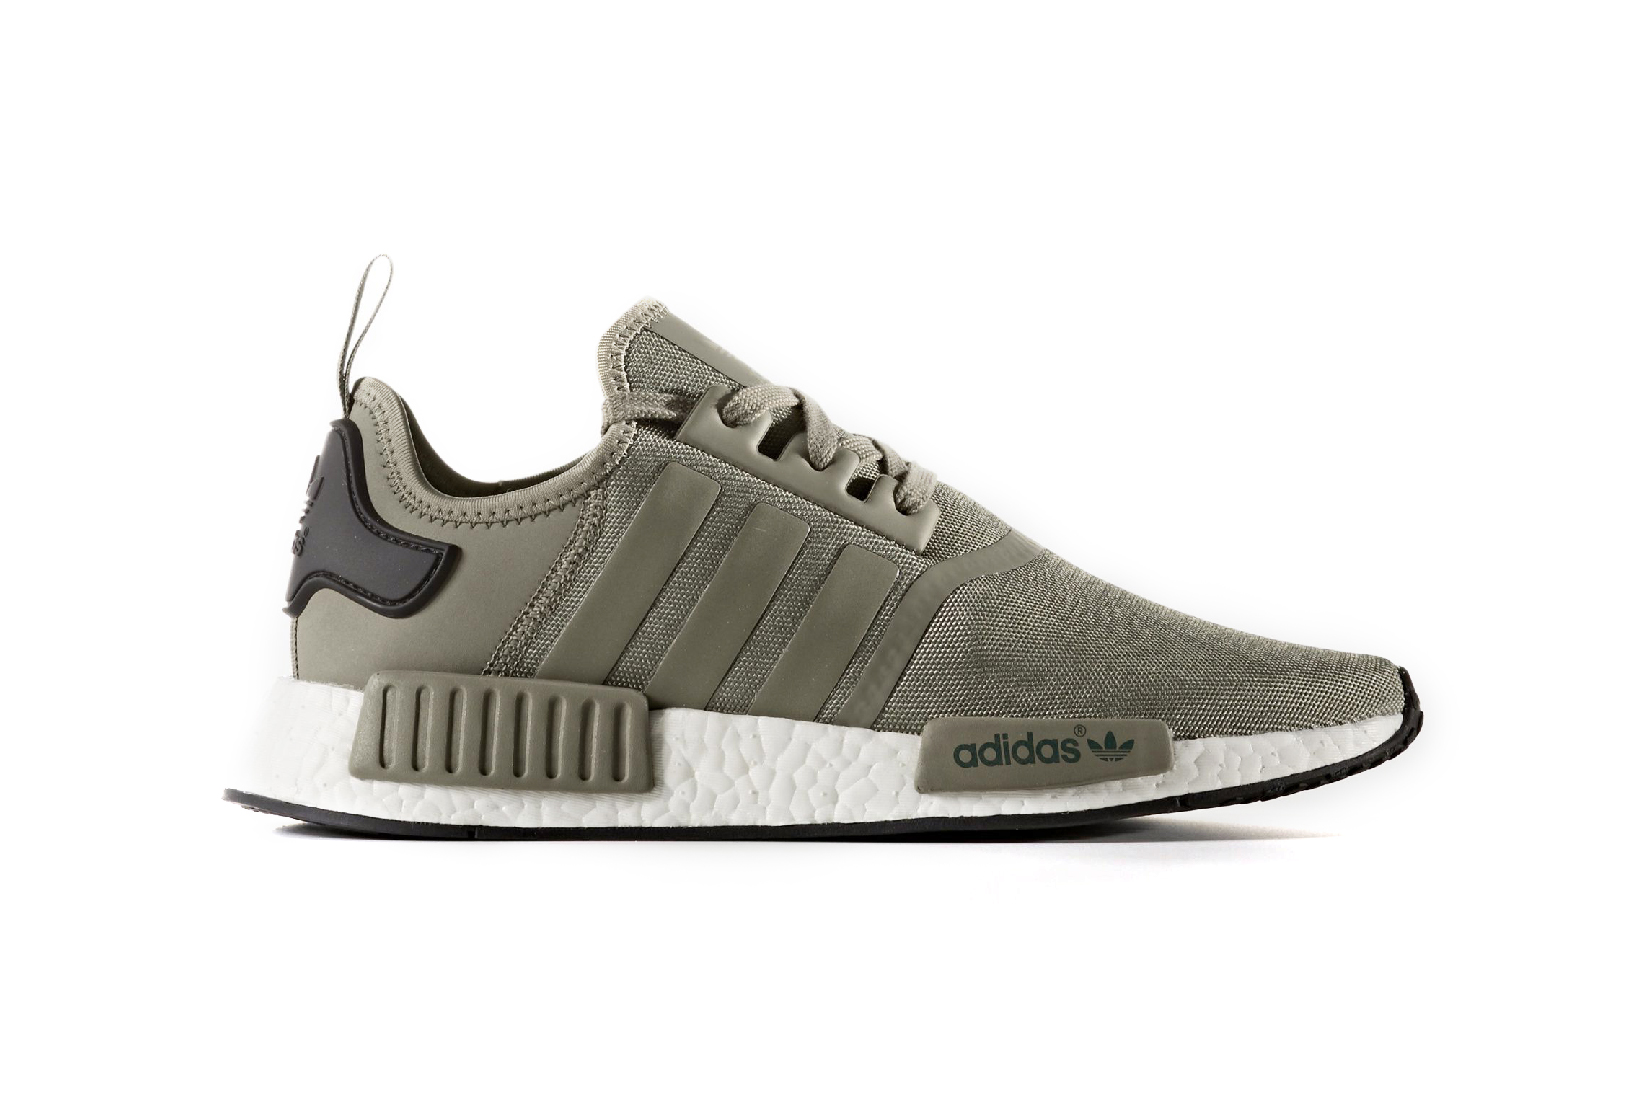 2be2382077435 adidas Originals NMD R2 Primeknit Men s Running Shoes NDUCFA